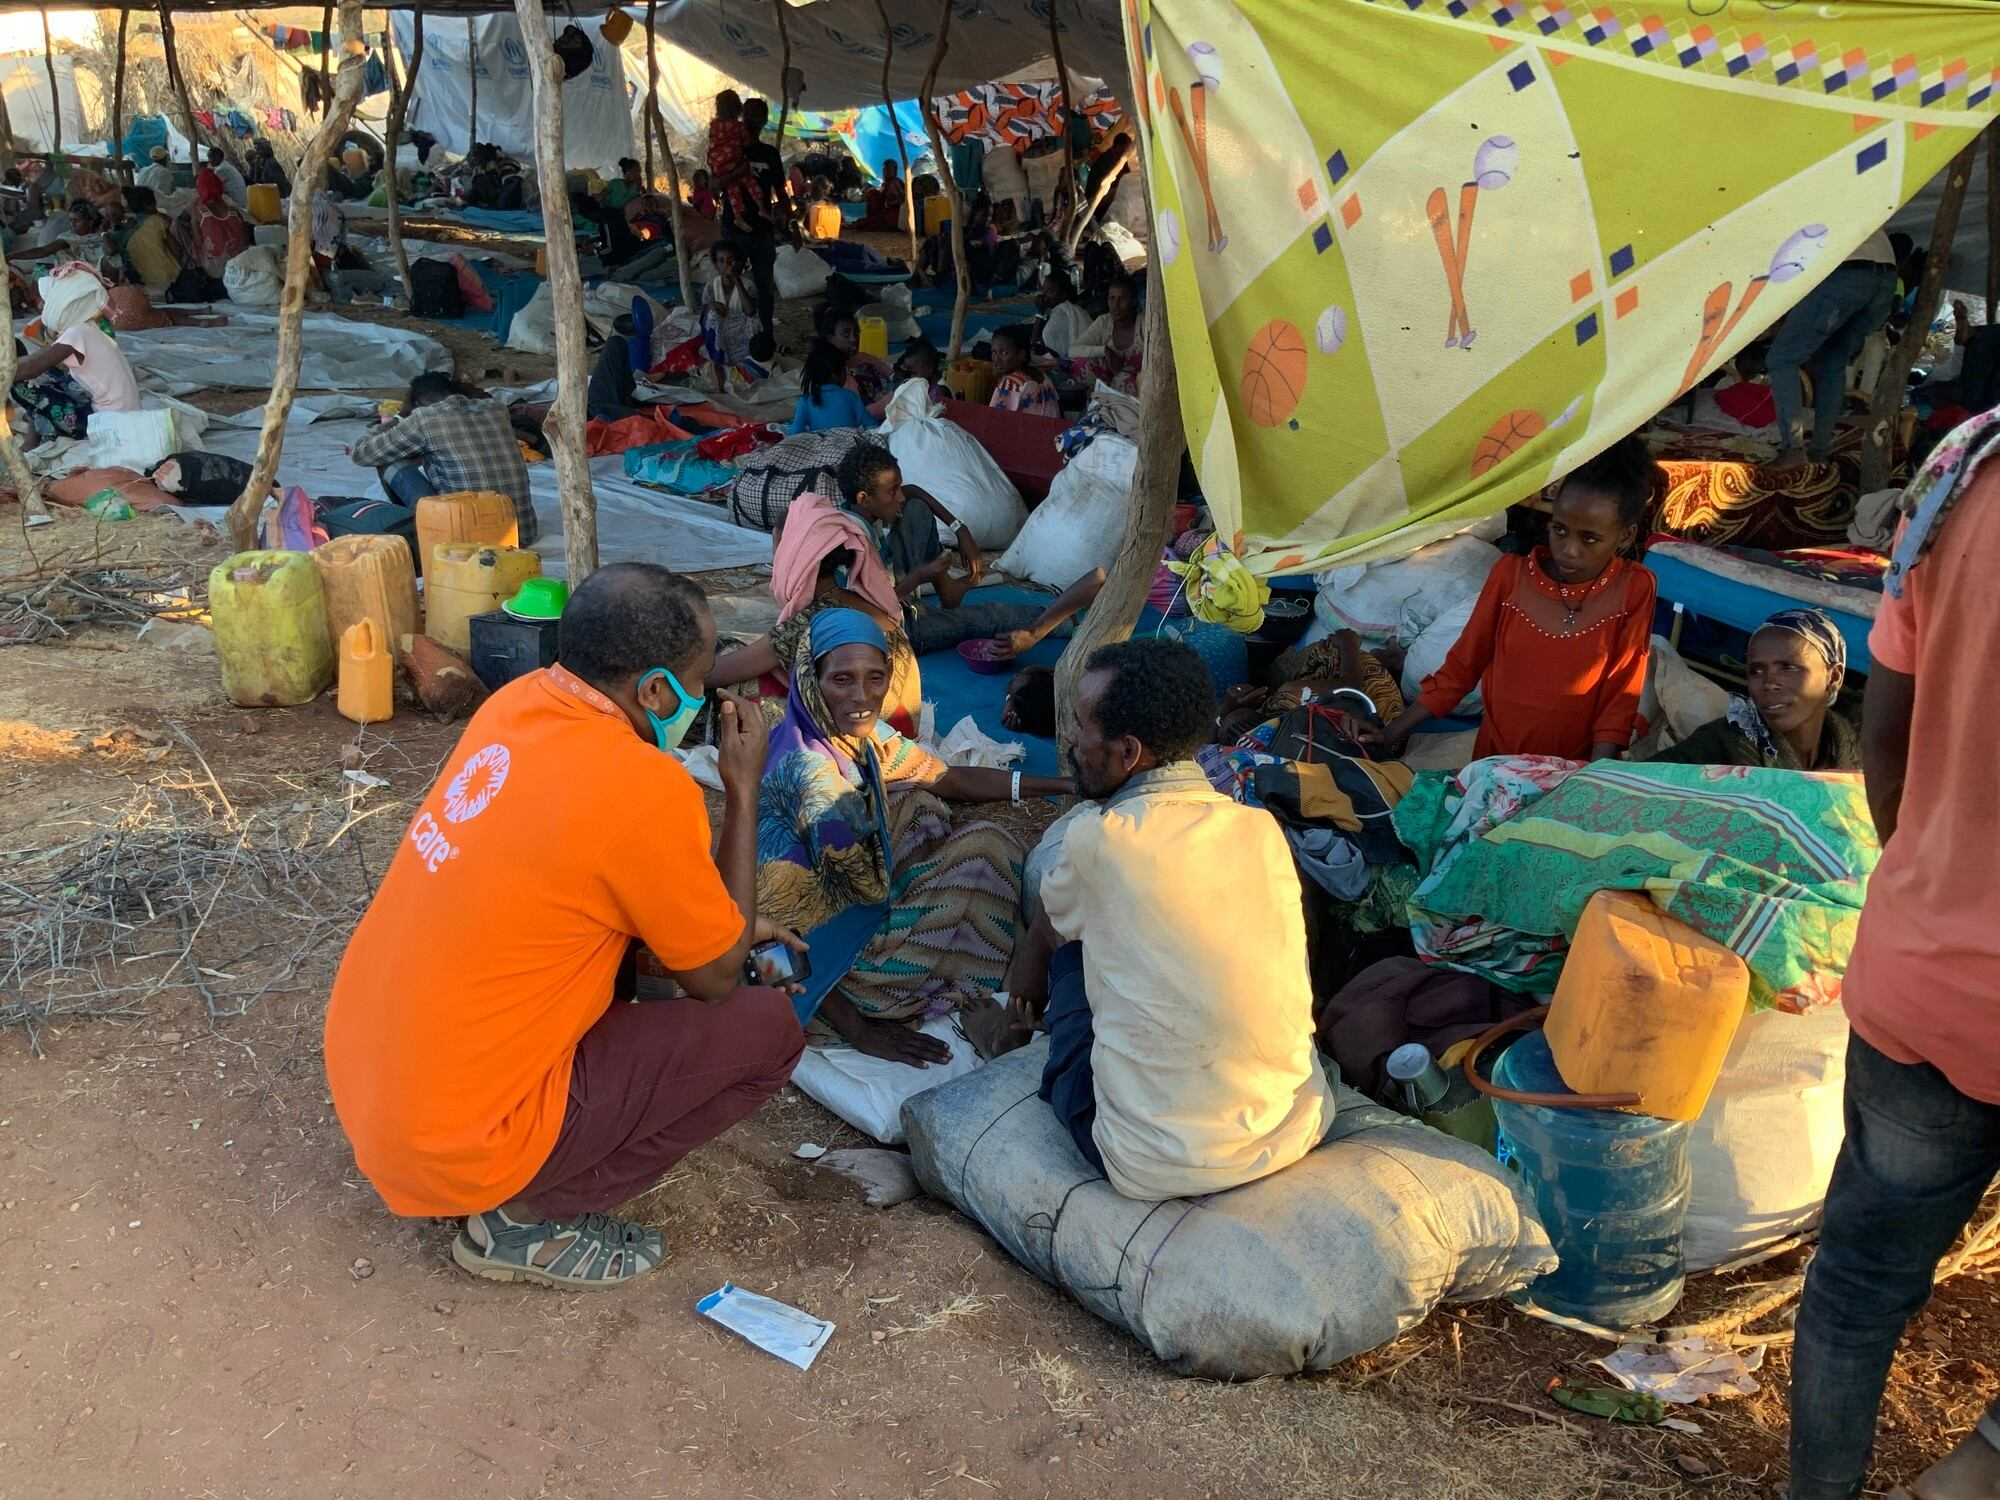 A man in a CARE shirt squats to speak with a family partially sitting under a covering of tarps and blankets.